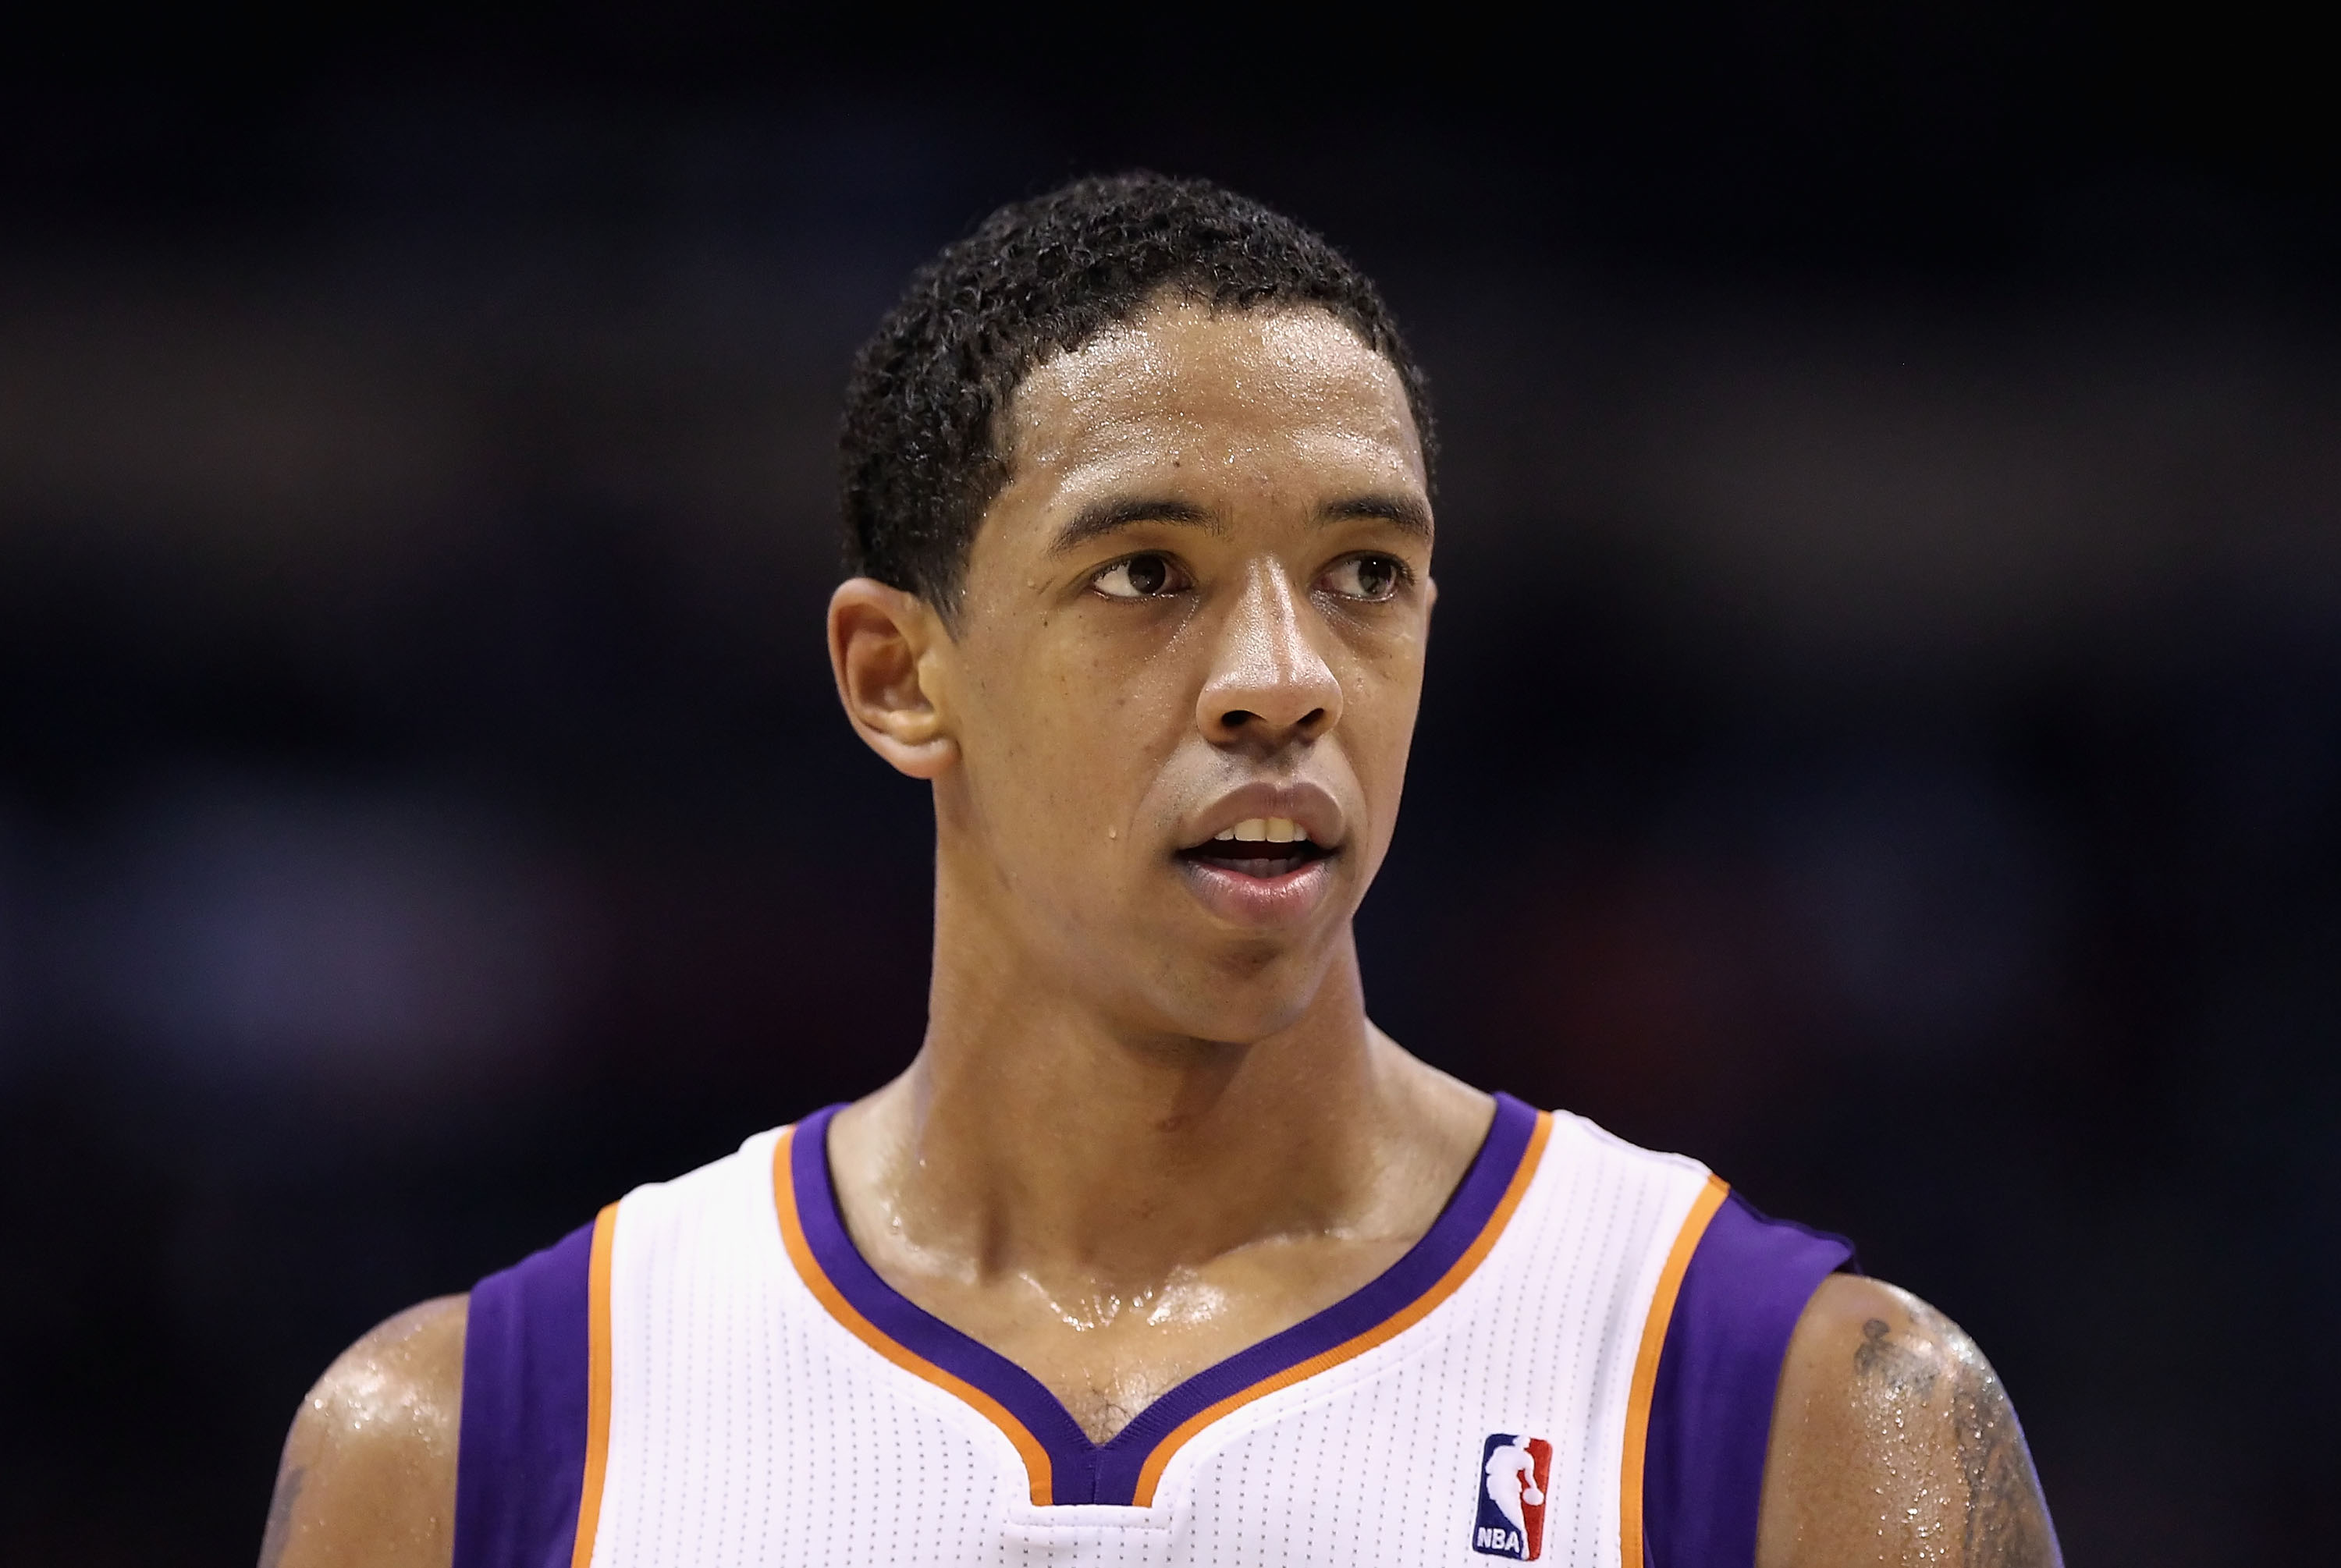 PHOENIX - DECEMBER 15:  Channing Frye #8 of the Phoenix Suns during the NBA game against the Minnesota Timberwolves at US Airways Center on December 15, 2010 in Phoenix, Arizona.  The Suns defeated the Timberwolves 128-122.  NOTE TO USER: User expressly a